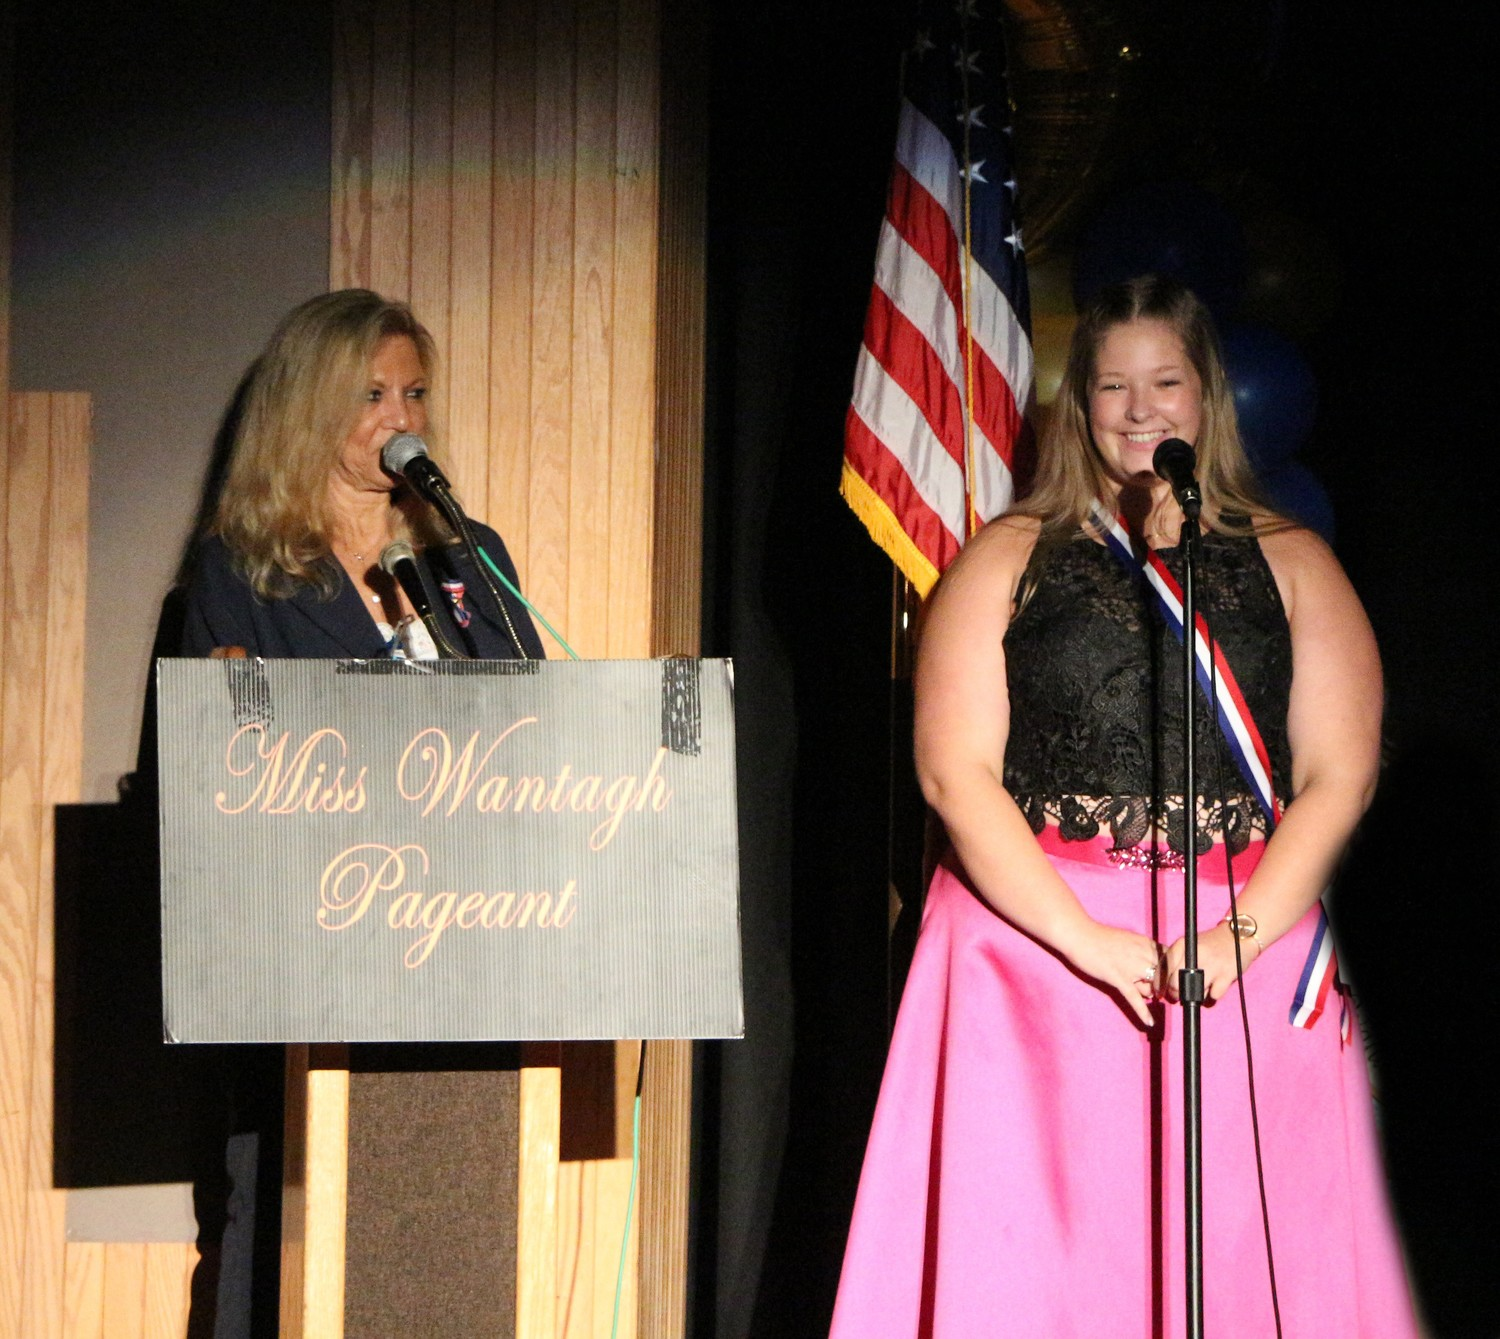 Bailey took questions from Ella Stevens, the director of the Miss Wantagh Pageant, during the pageant on June 29.